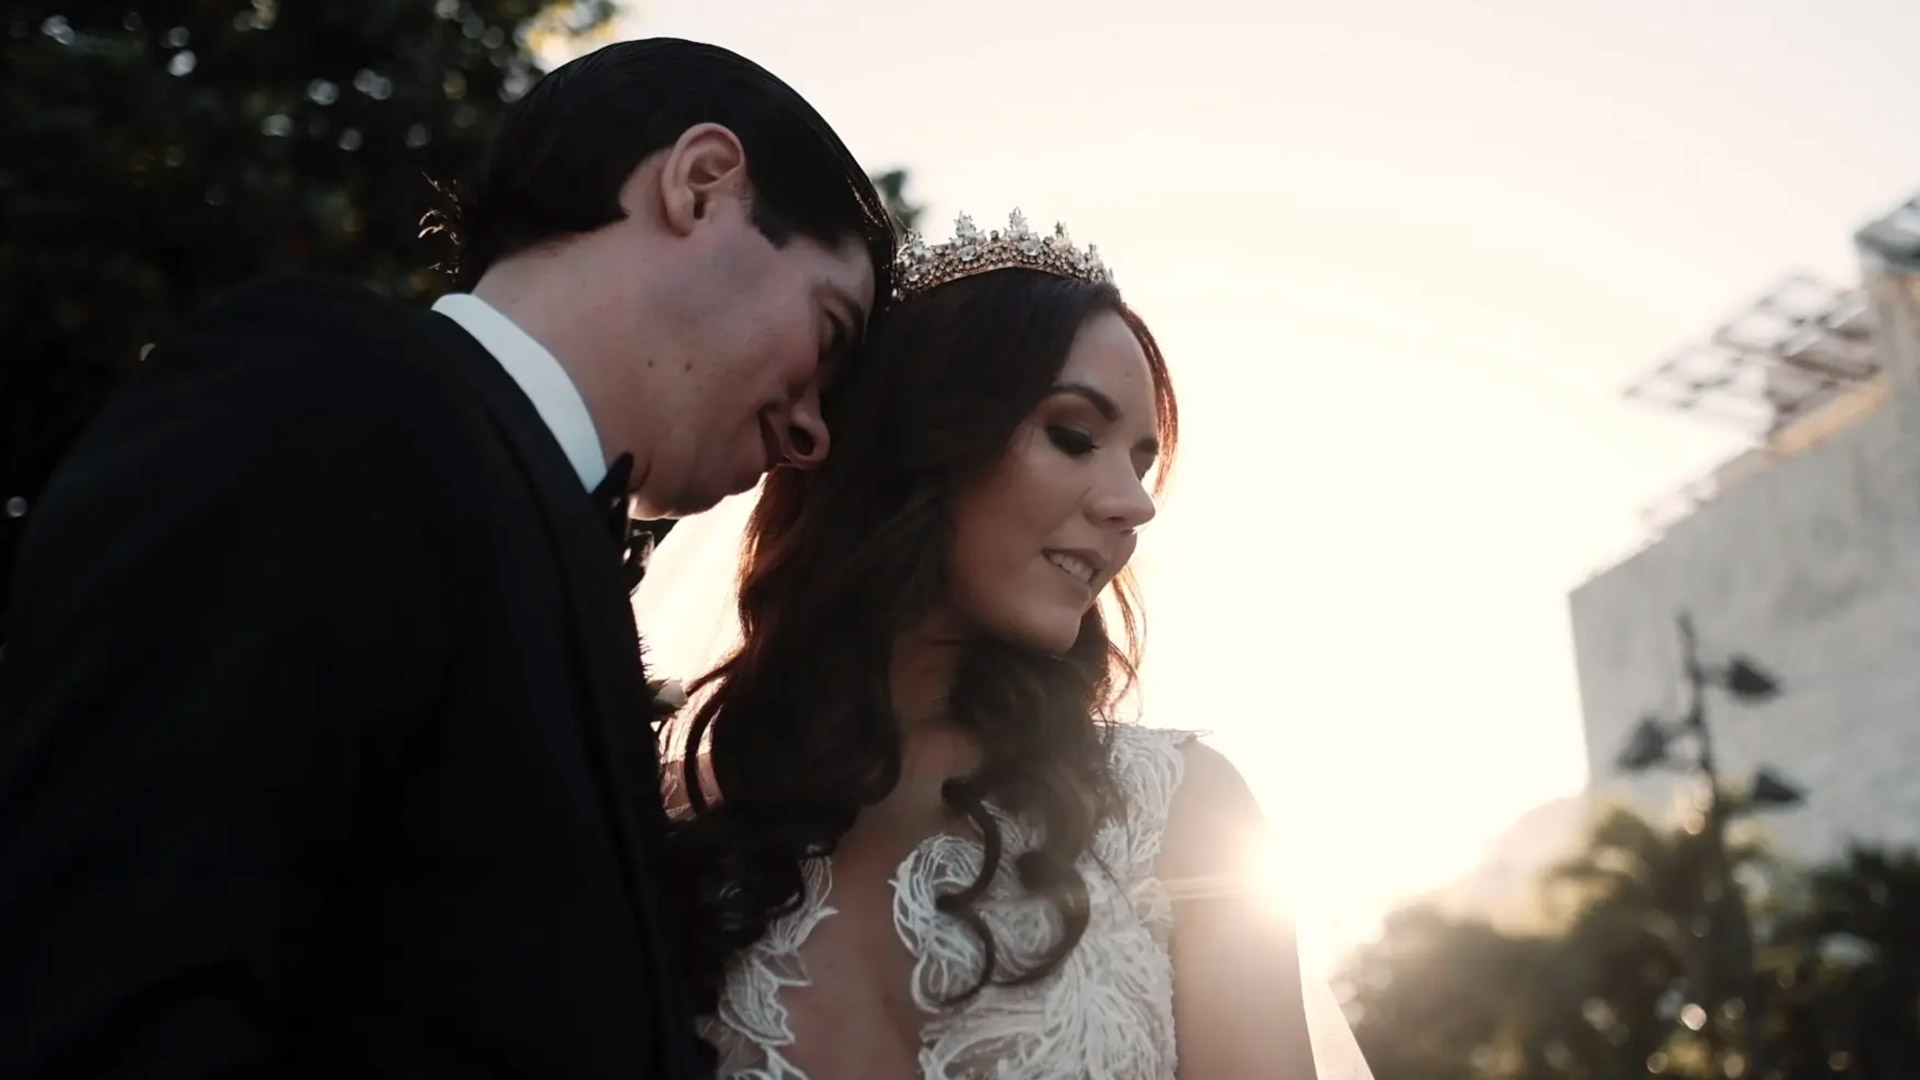 Elsie & Jorge Highlights